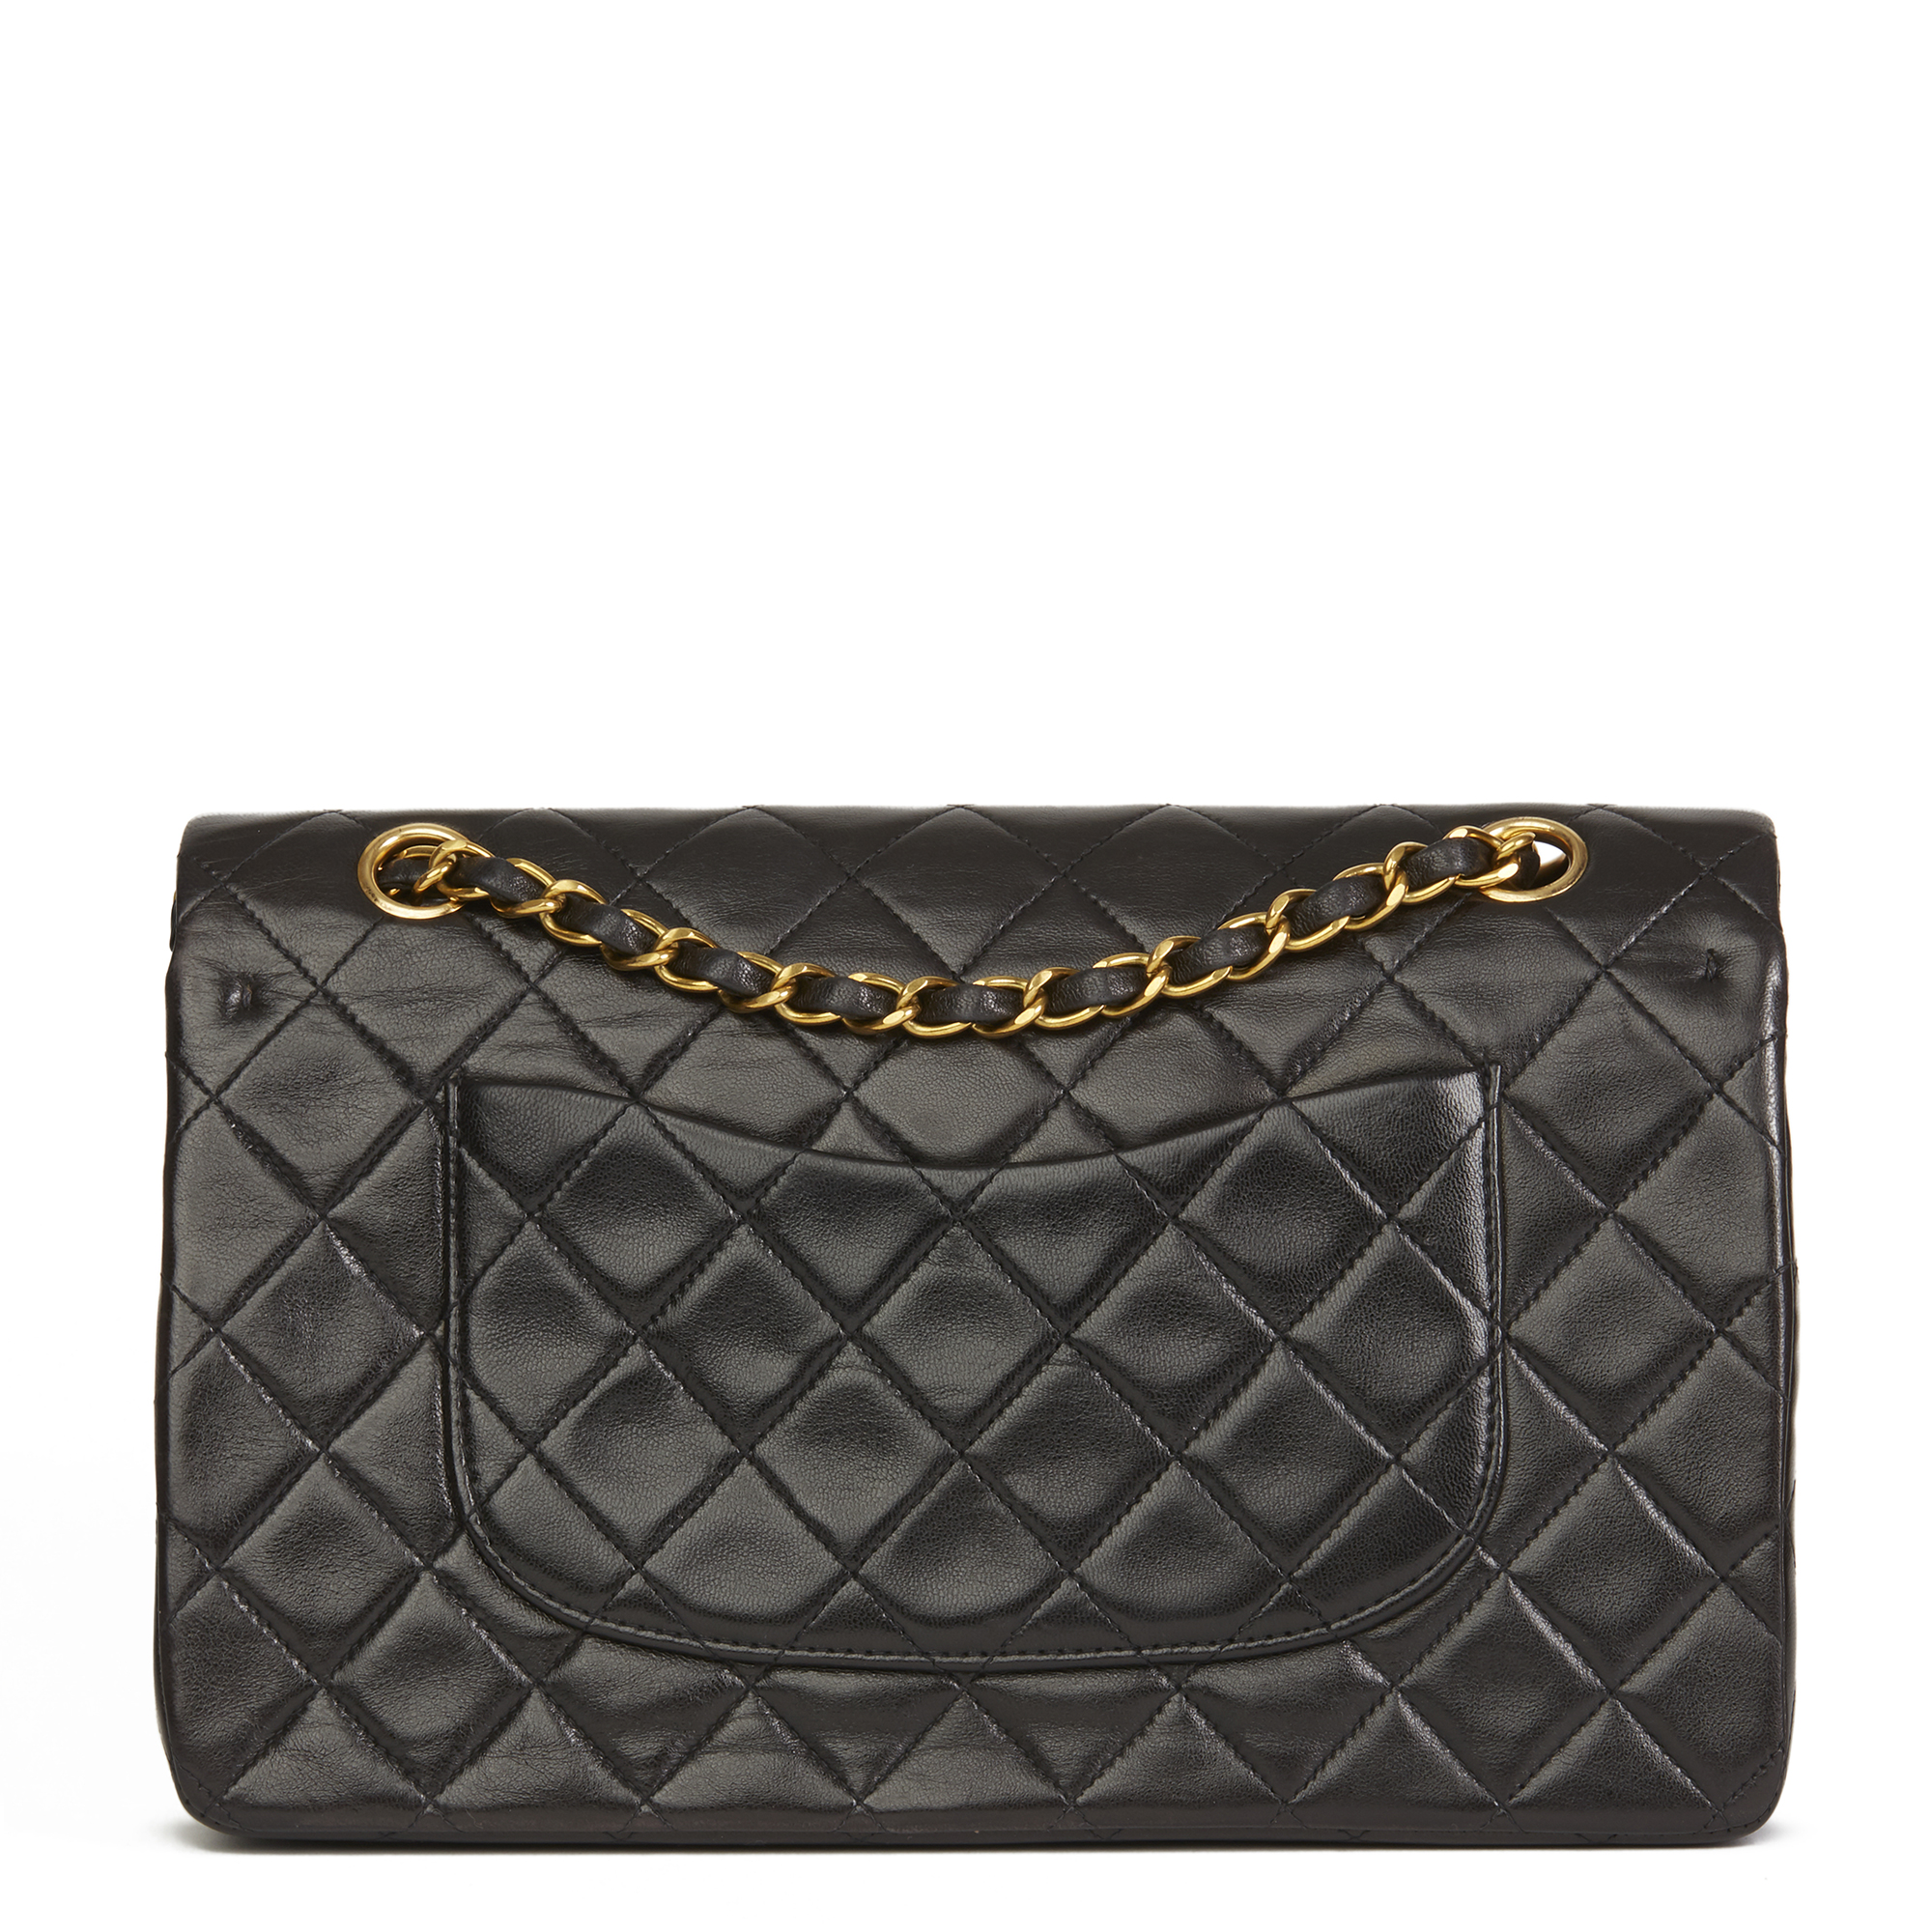 448c7acd388a Chanel Black Quilted Lambskin Vine Medium Clic Double Flap Bag